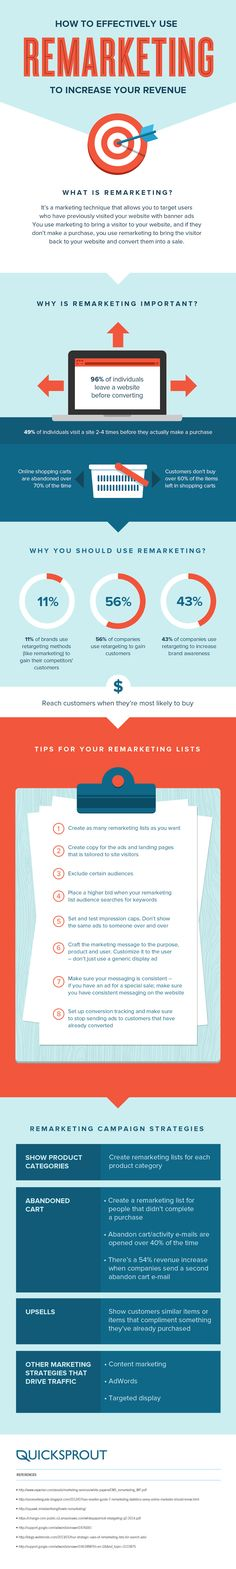 How Remarketing Can Be Used to Increase Revenue [Infographic]